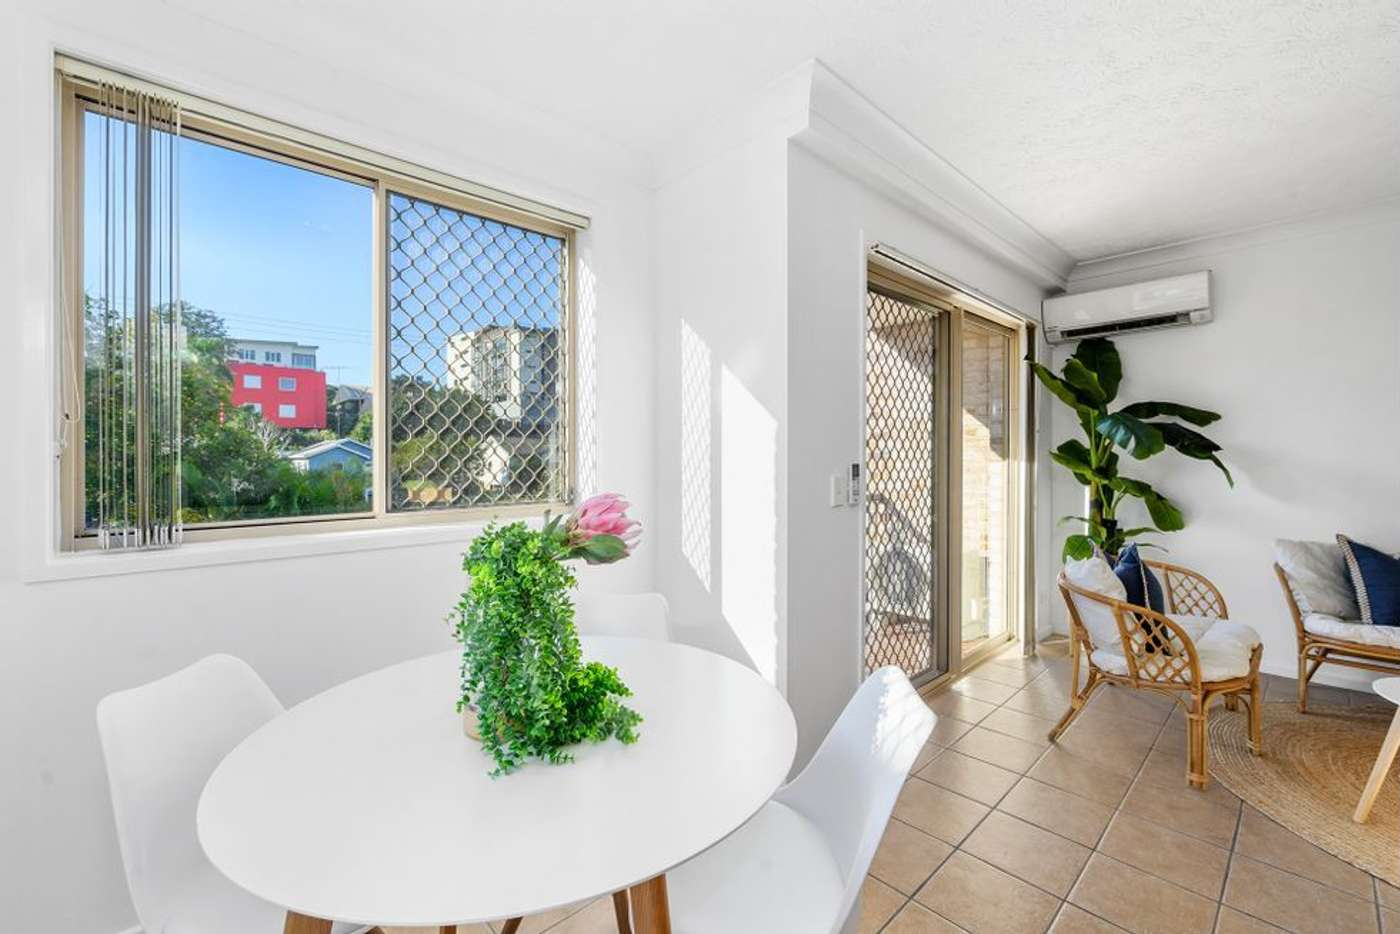 Sixth view of Homely unit listing, 20/14-16 Spendelove Avenue, Southport QLD 4215